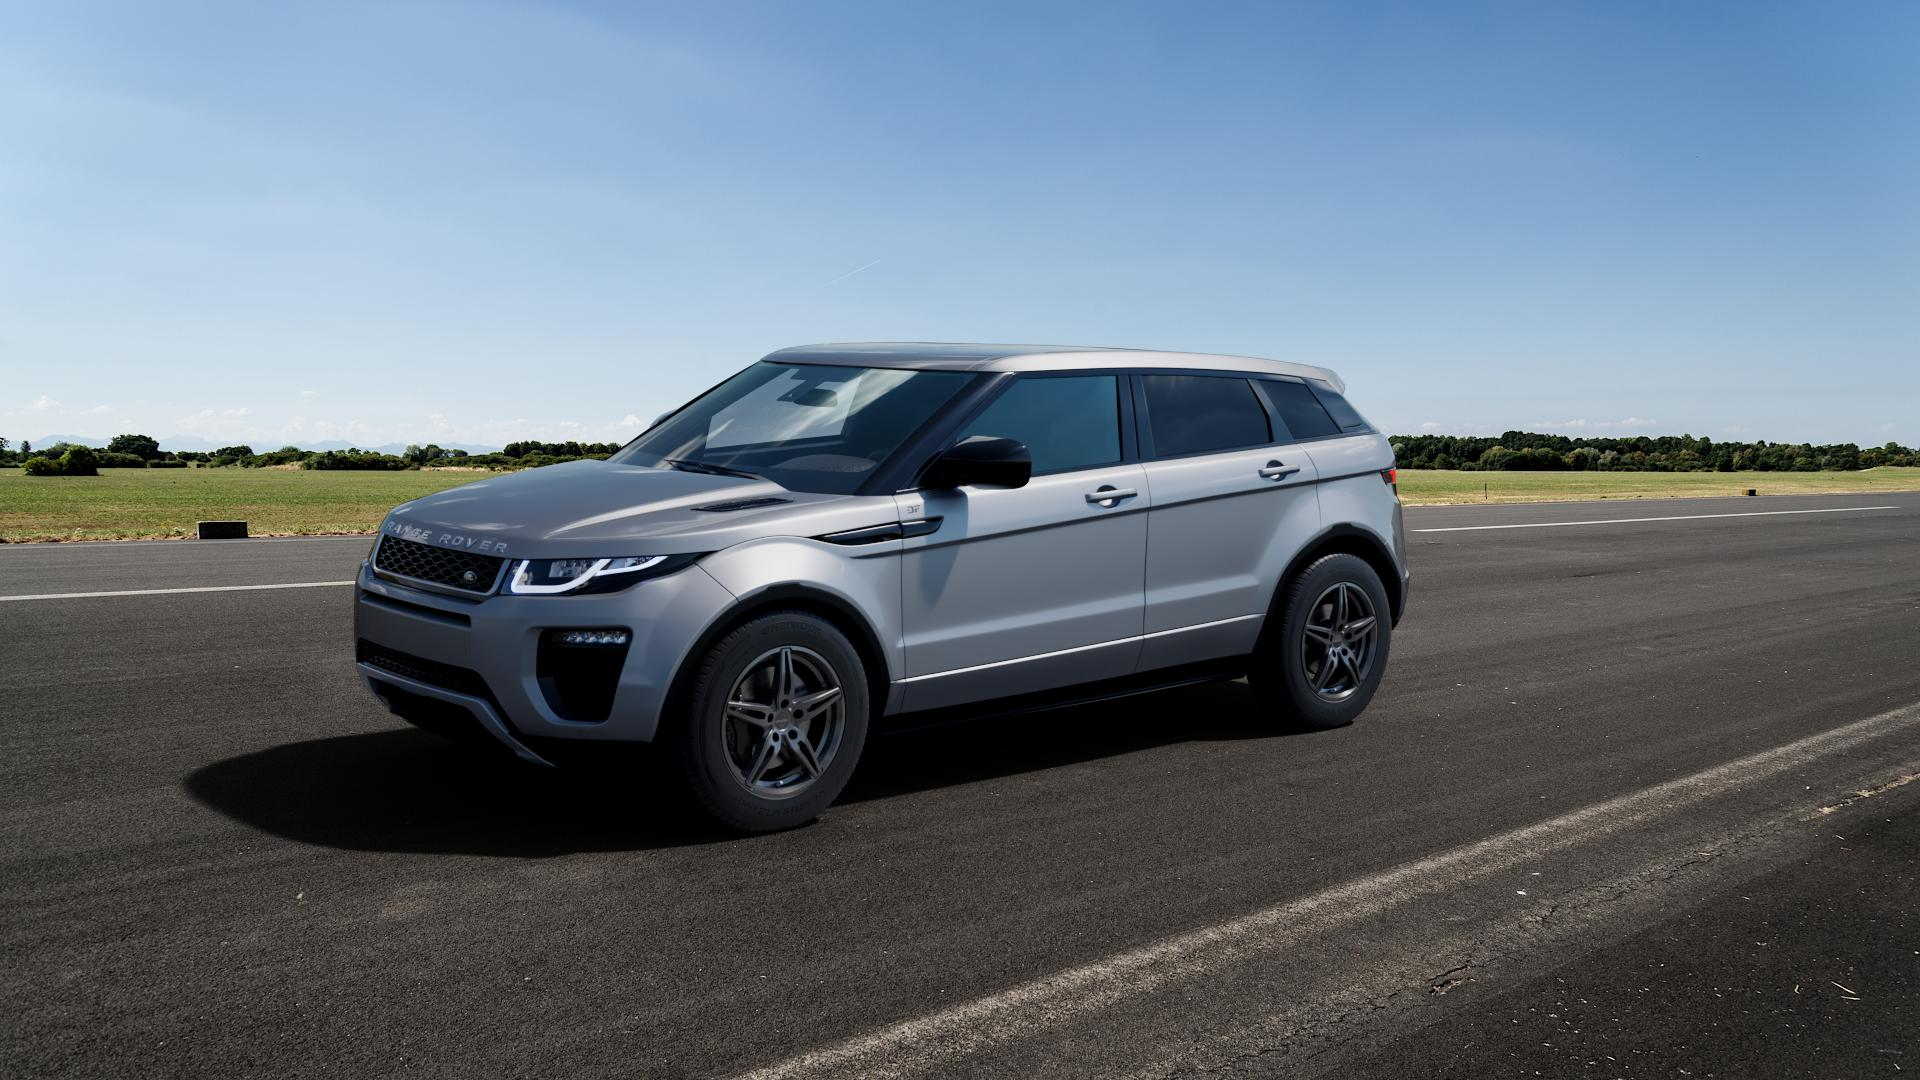 CARMANI 15 Oskar hyper gun Felge mit Reifen silber in 17Zoll Winterfelge Alufelge auf silbernem Land Rover Range Evoque Typ LV Facelift ⬇️ mit 15mm Tieferlegung ⬇️ Big_Vehicle_Airstrip_1 Frontansicht_1